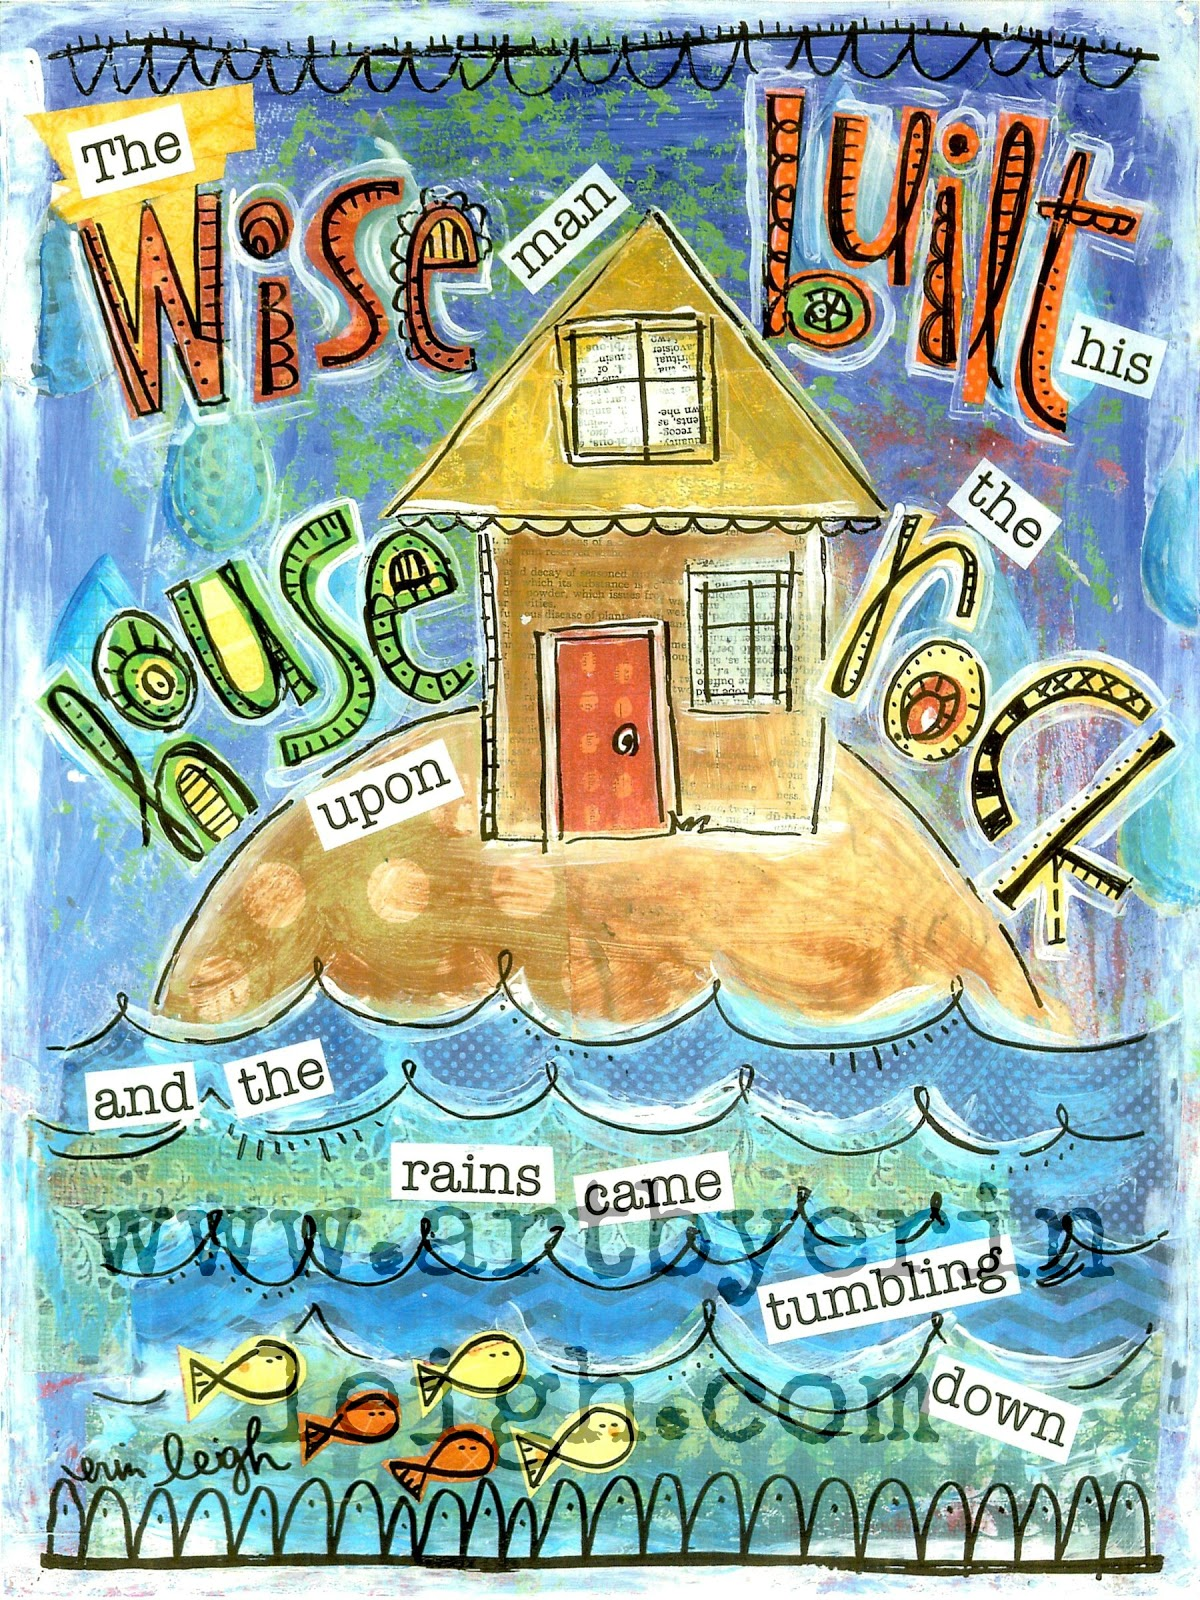 Wise man built his house upon the rock sermon - Art By Erin Leigh